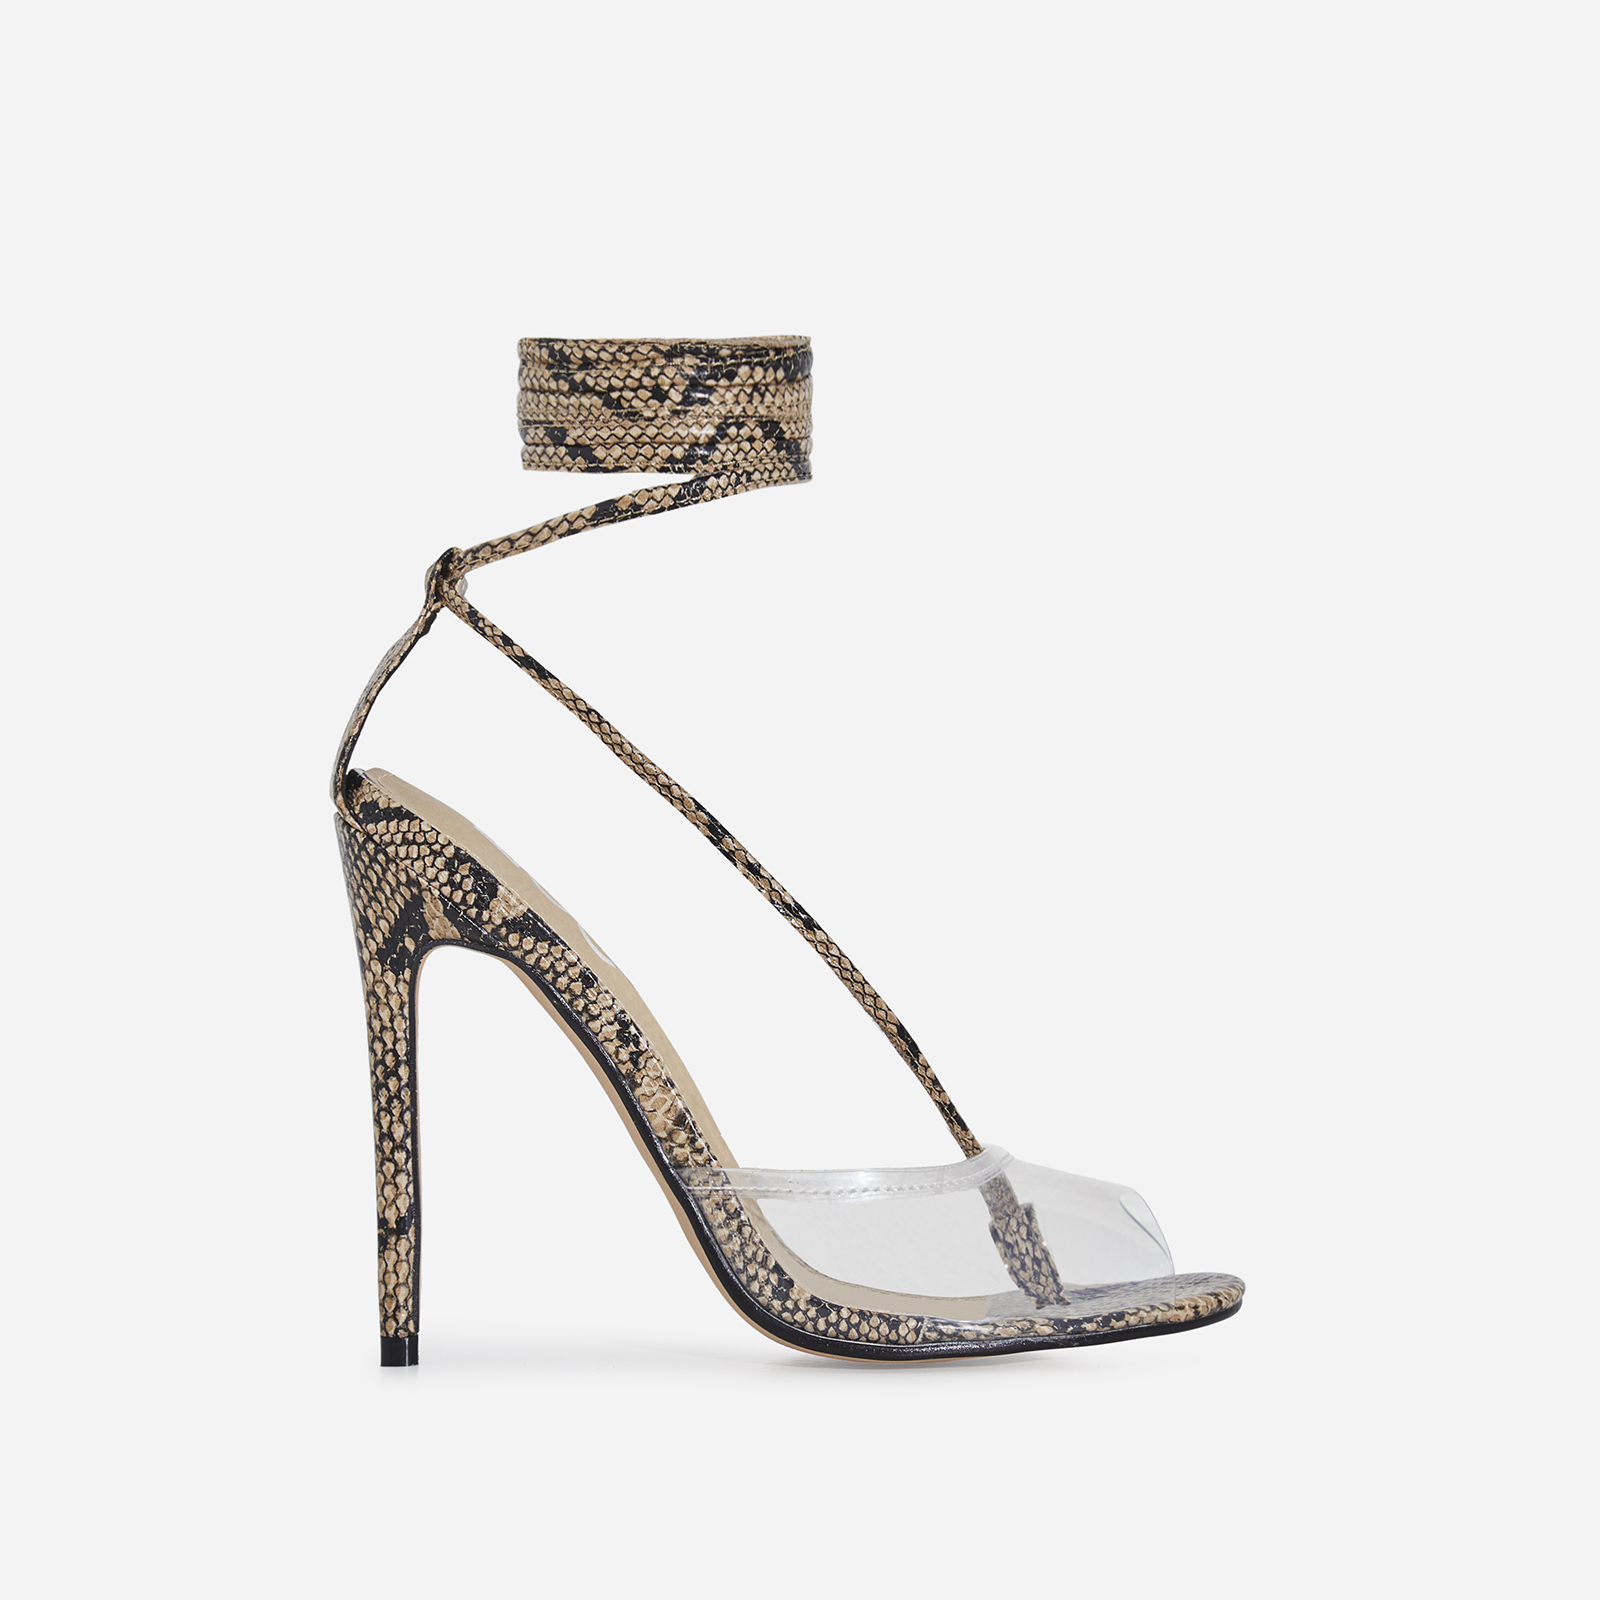 Tinder Lace Up Perspex Heel In Nude Snake Print Faux Leather